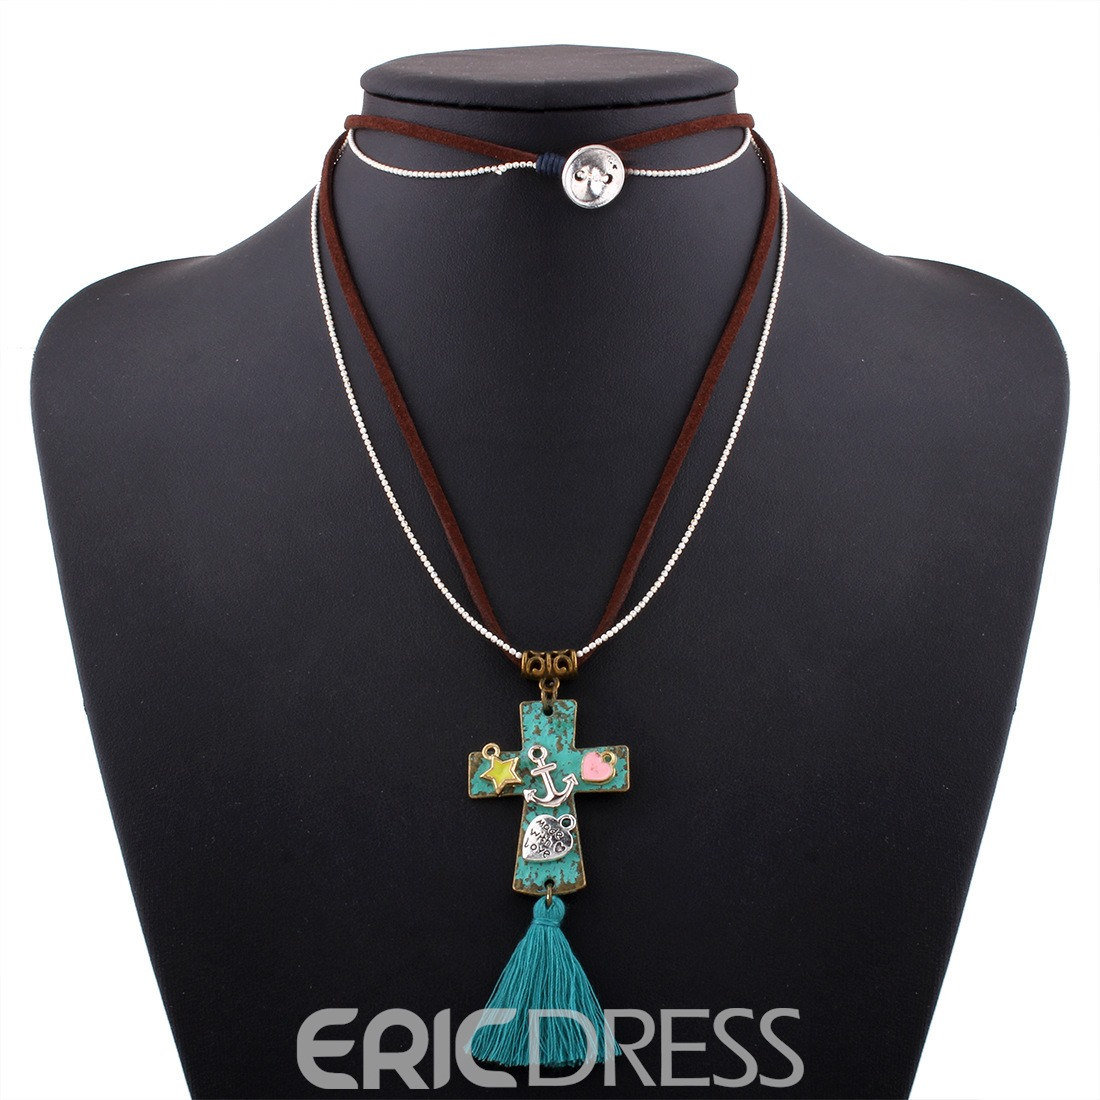 Ericdress Cross Pendant Tassel Necklace Women's Necklace